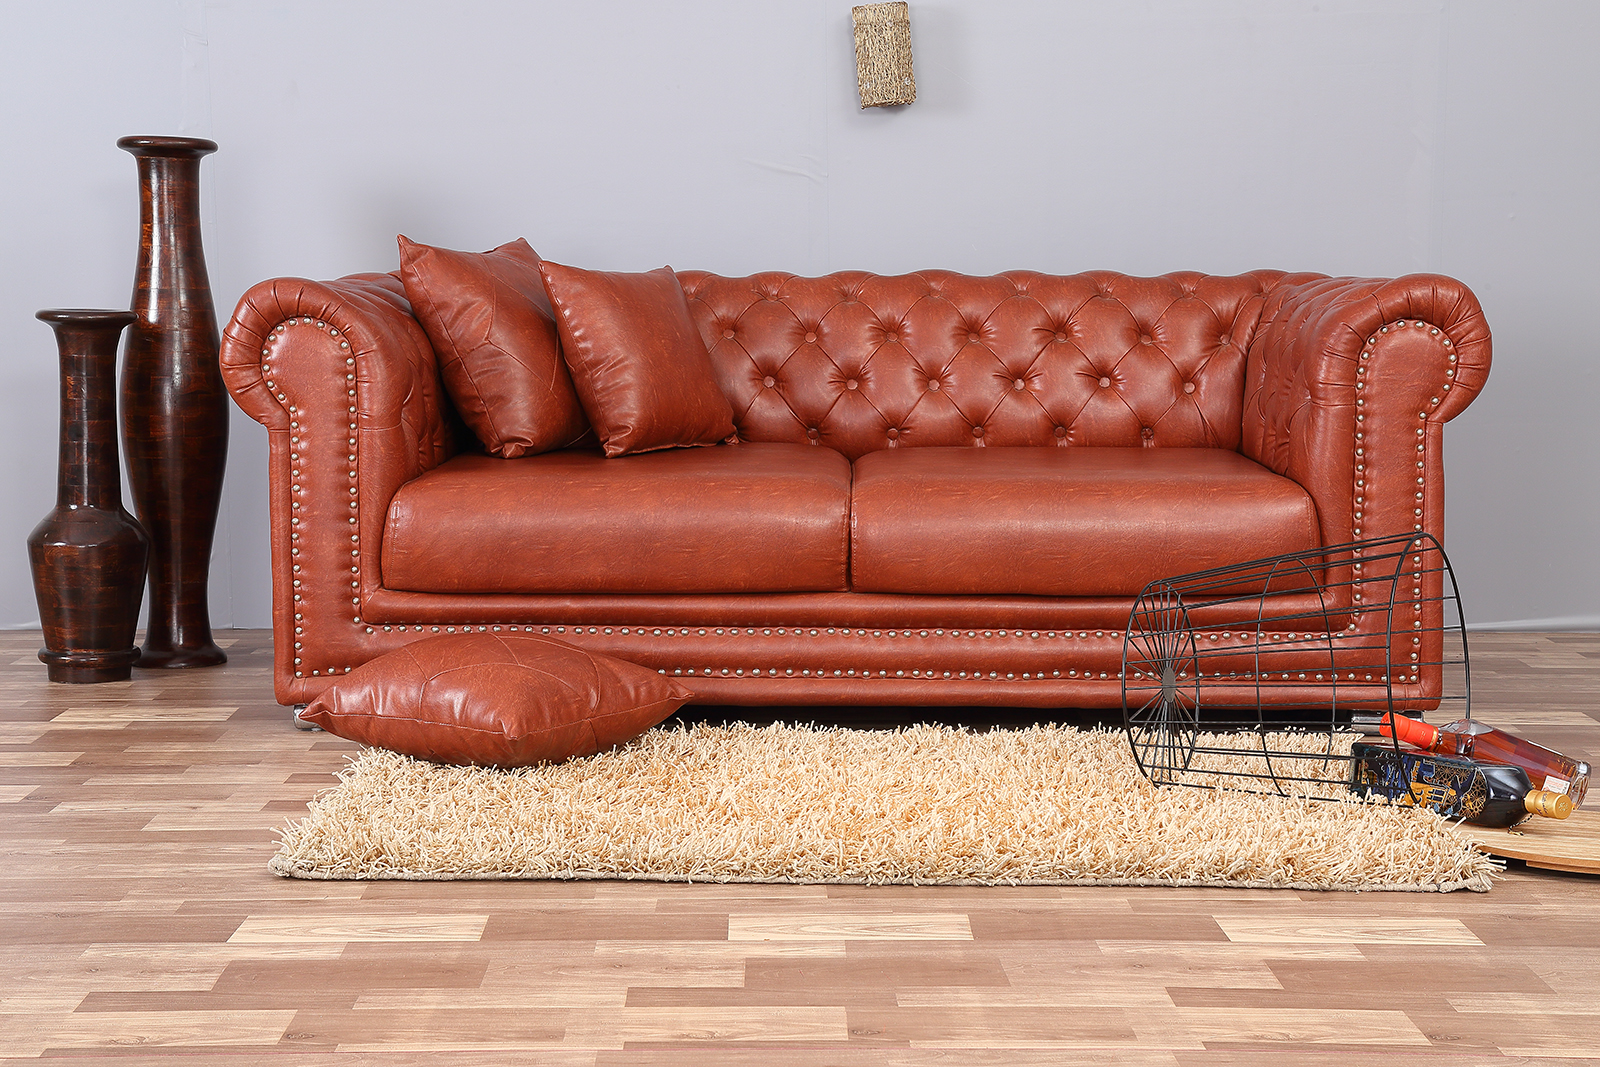 Enjoyable Toranto Three Seater Sofa Cowboy Sofas Inzonedesignstudio Interior Chair Design Inzonedesignstudiocom